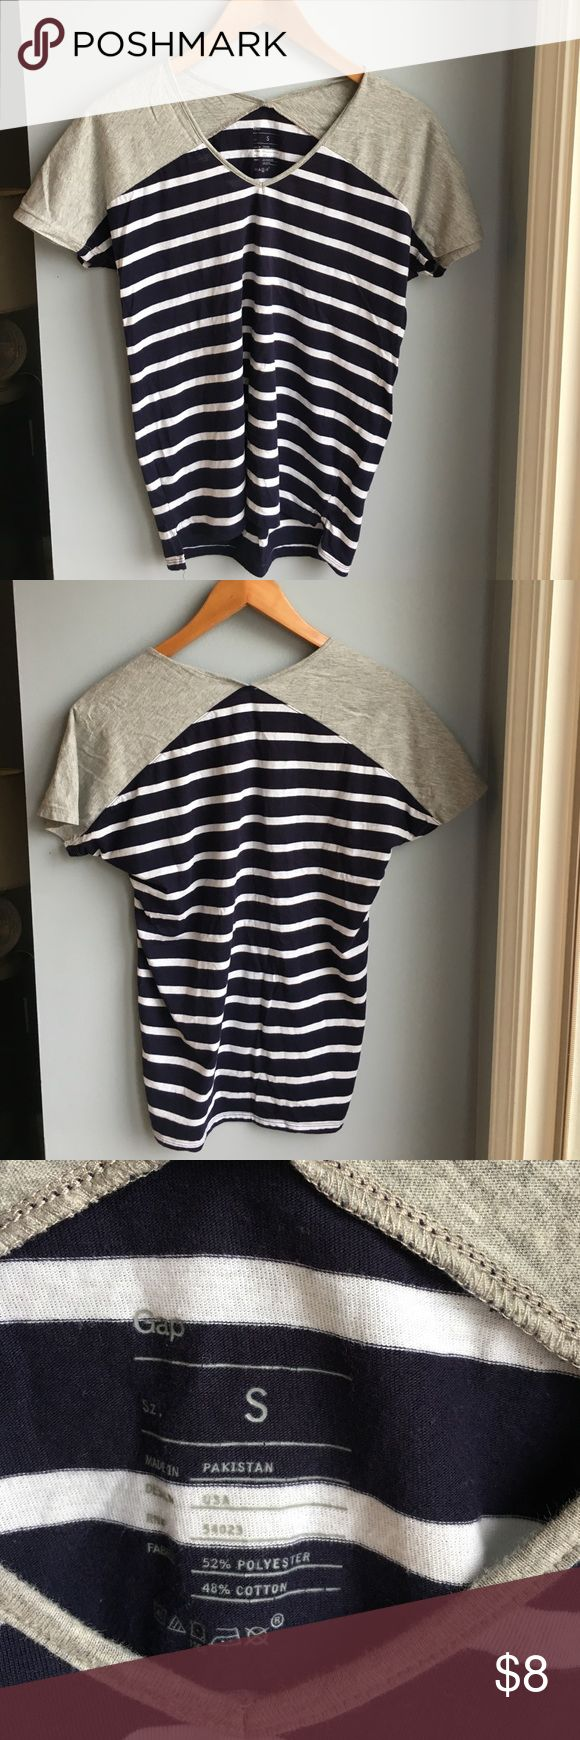 Gap t-shirt Navy blue and white, and gray striped t-shirt. Gap brand, size small. Barely worn GAP Tops Tees - Short Sleeve